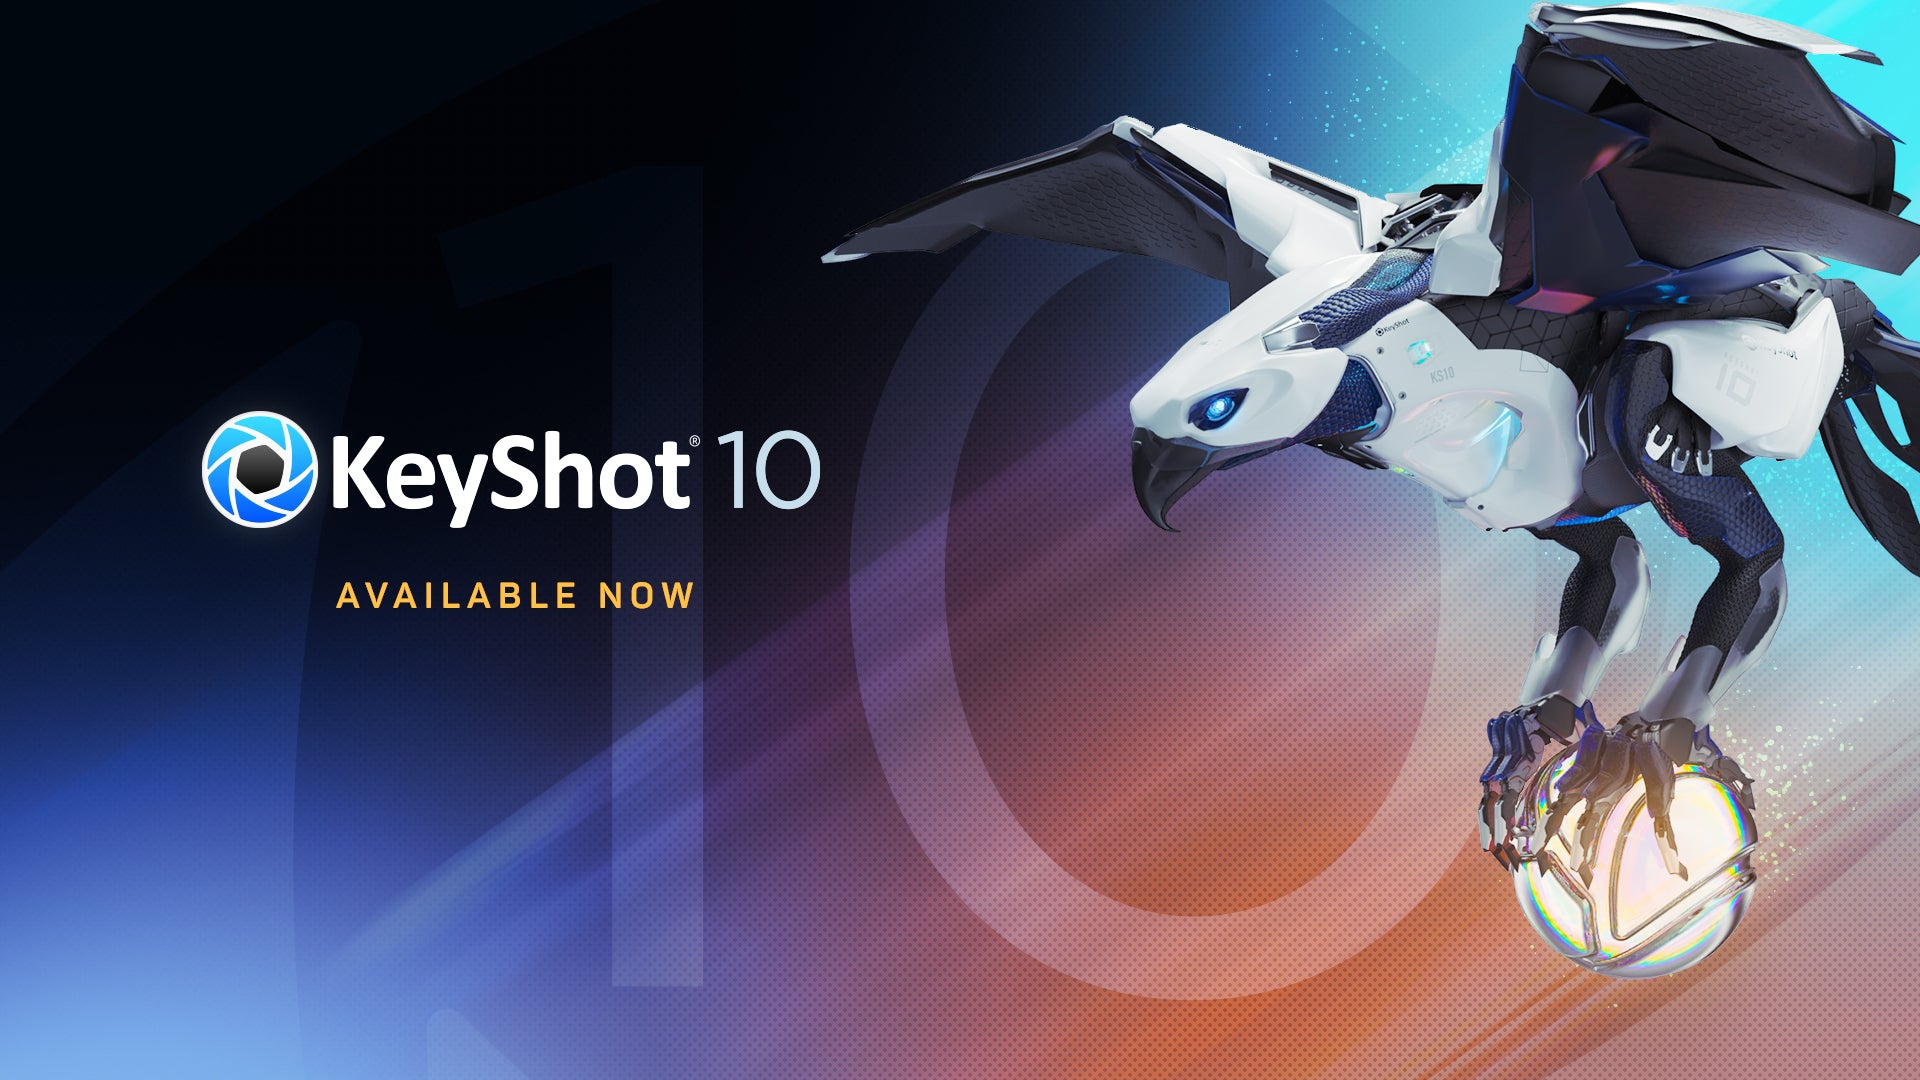 Top 10 Features Of The New KeyShot 10